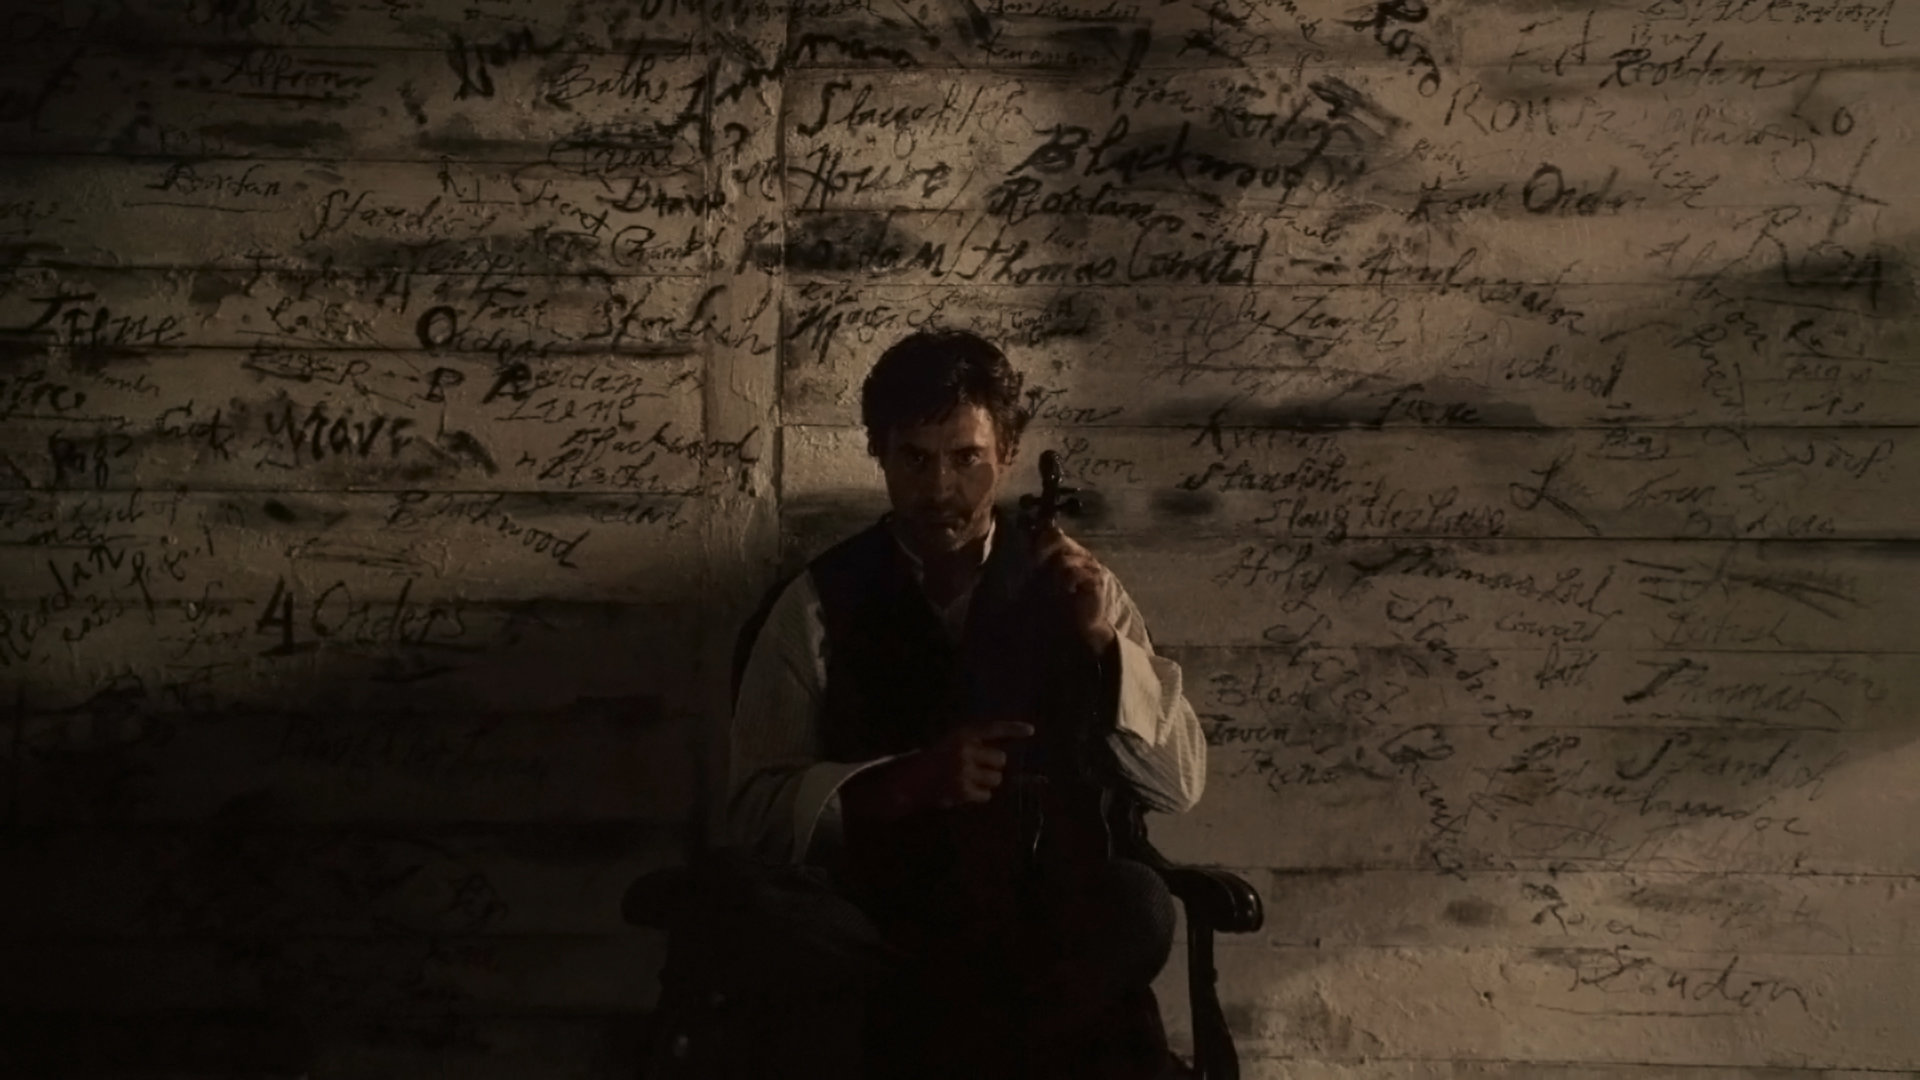 Sherlock Holmes A Game Of Shadows Wallpapers Hd For Desktop